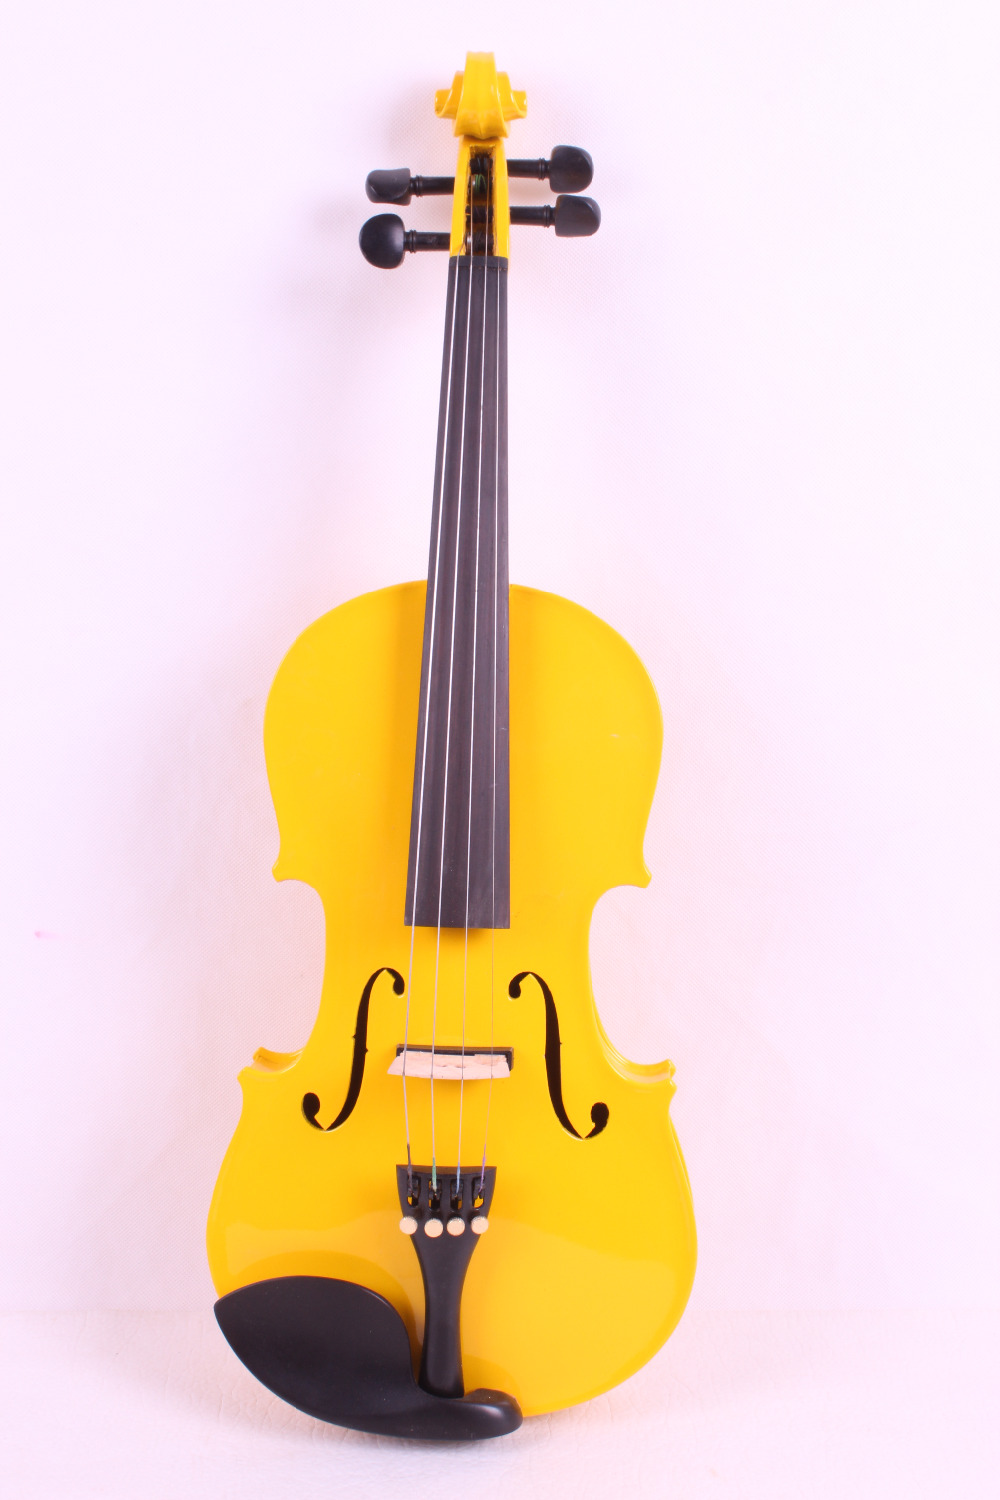 4/4 PINK 4 string Electric Acoustic Violin Solid Wood Nice Sound red  color BLACK  WHITE  BLUE   1-11# 4 4 high quality 5 string electric violin yellow 2 pickup violin